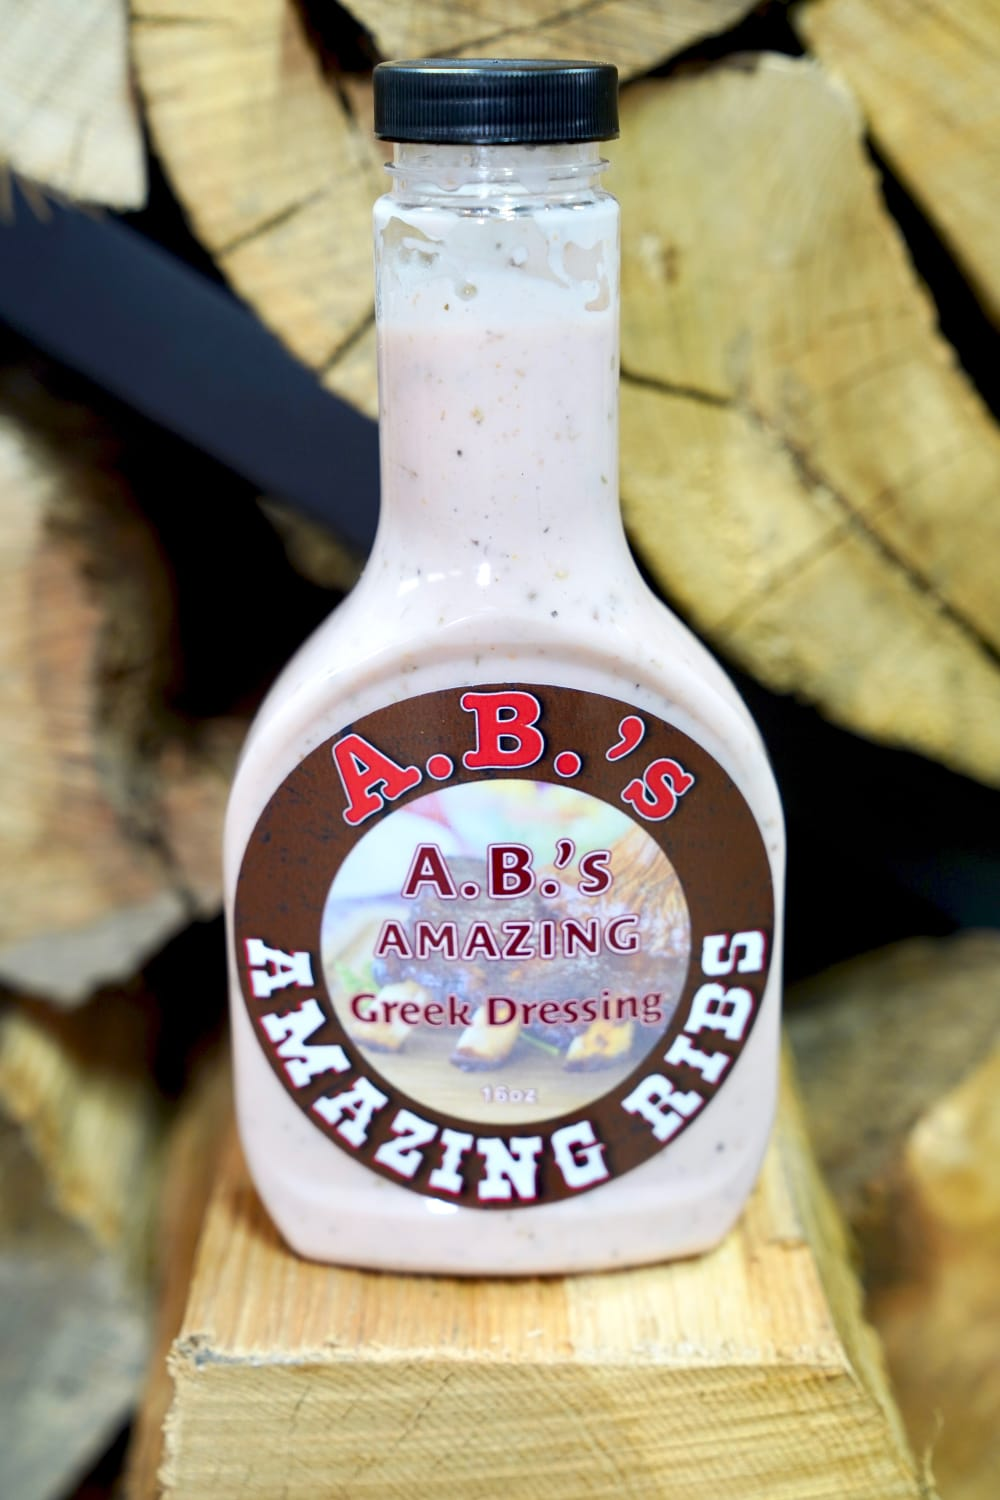 A.B.'s Amazing Greek Dressing